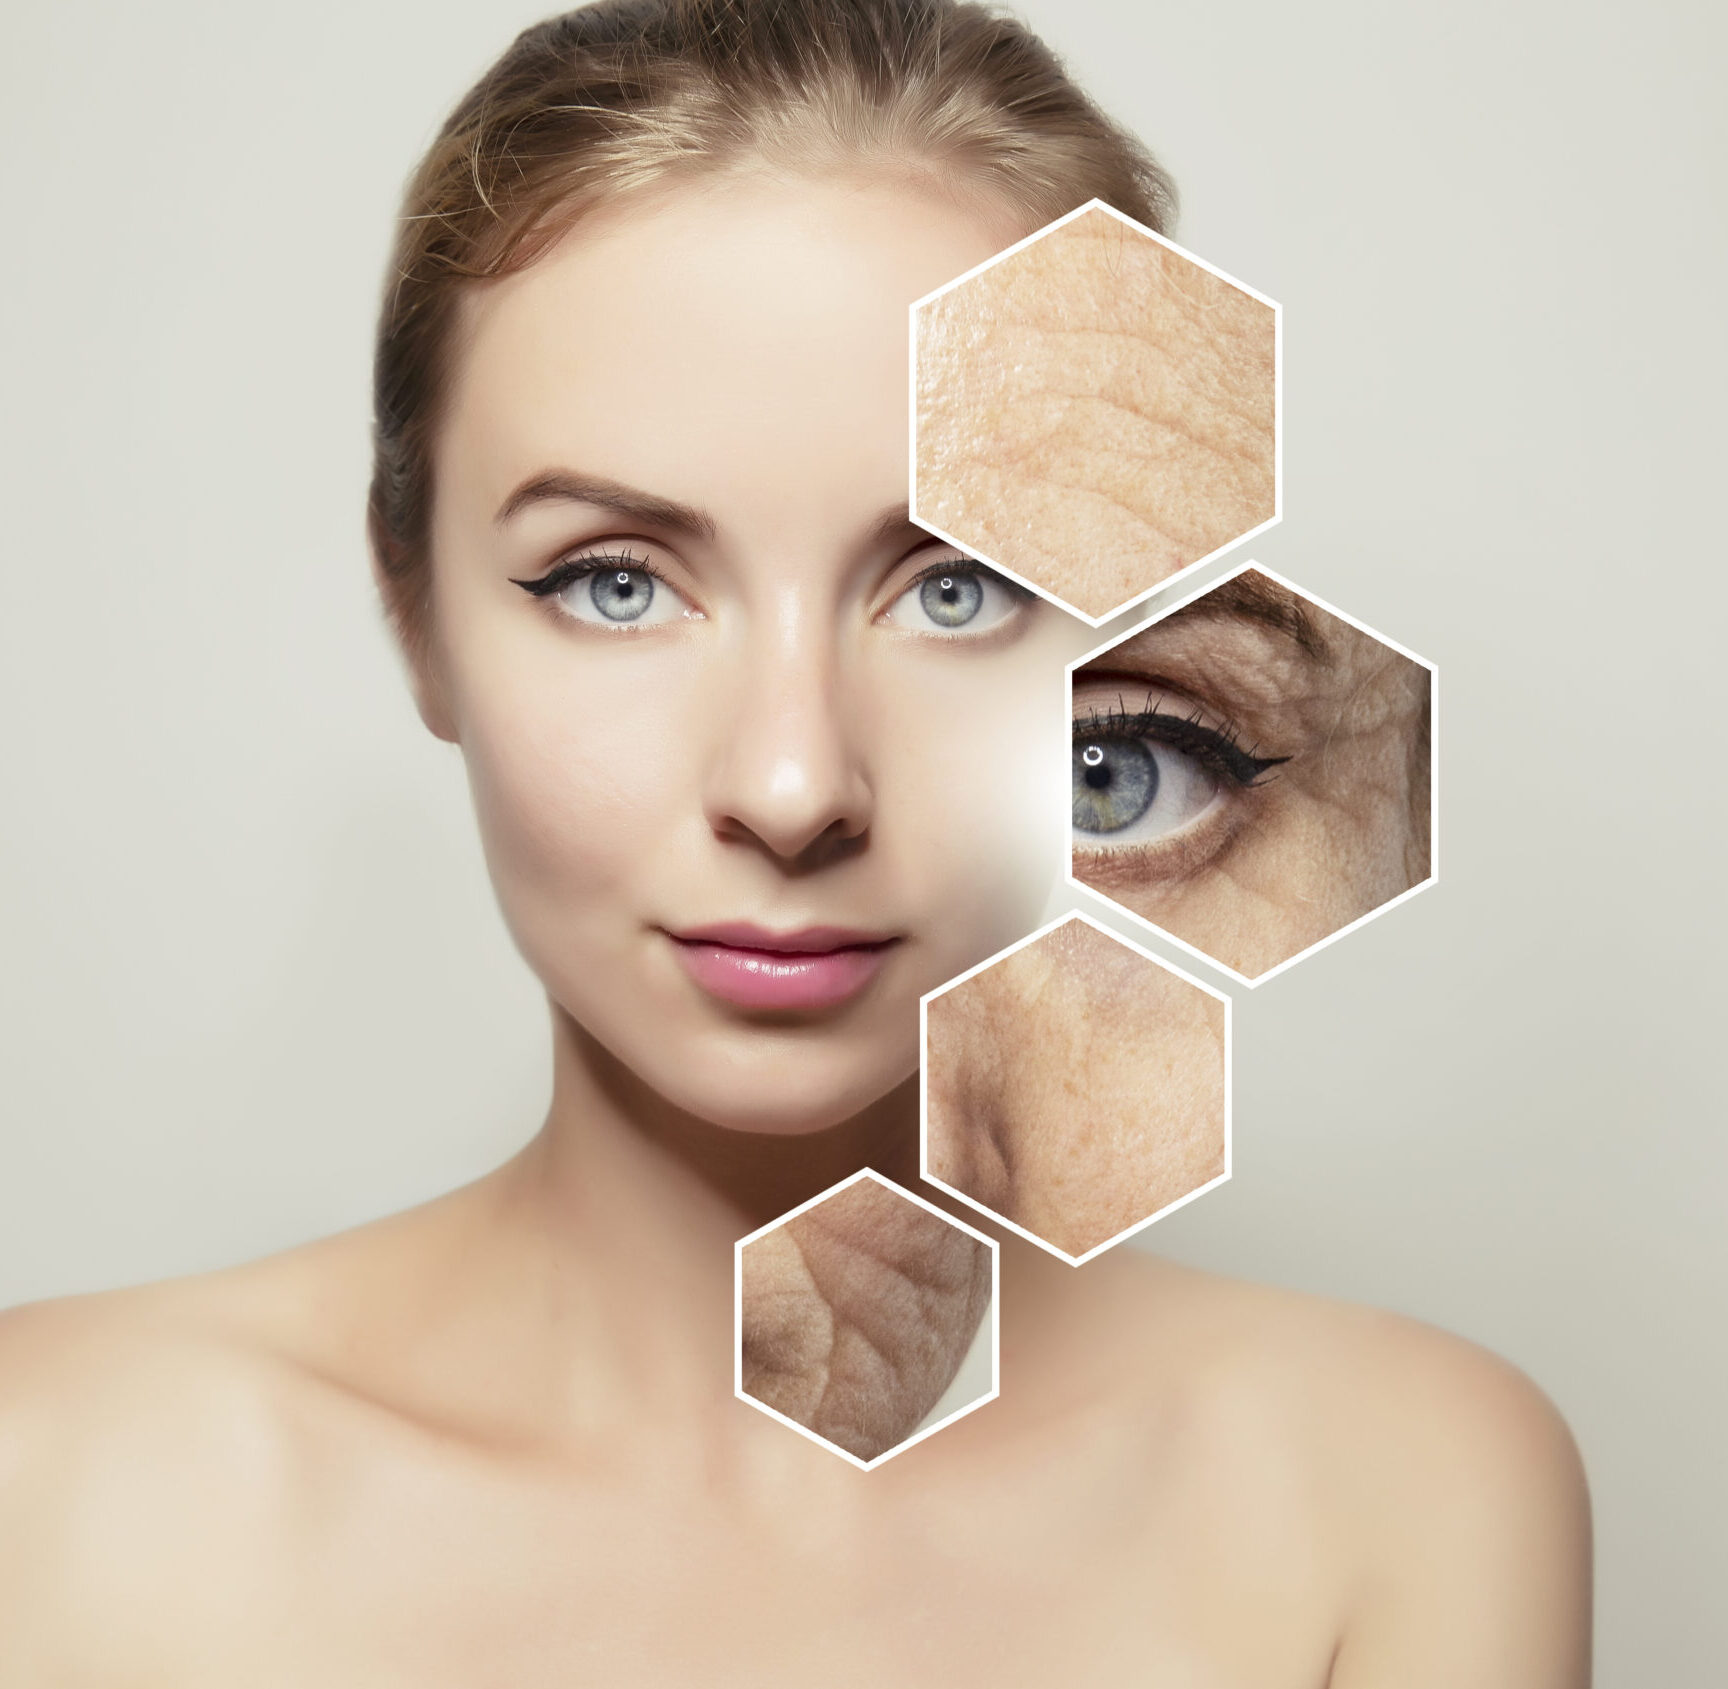 Physical Exercise for woman's face, wrinkles areas (eyes, lips, forehead, face)